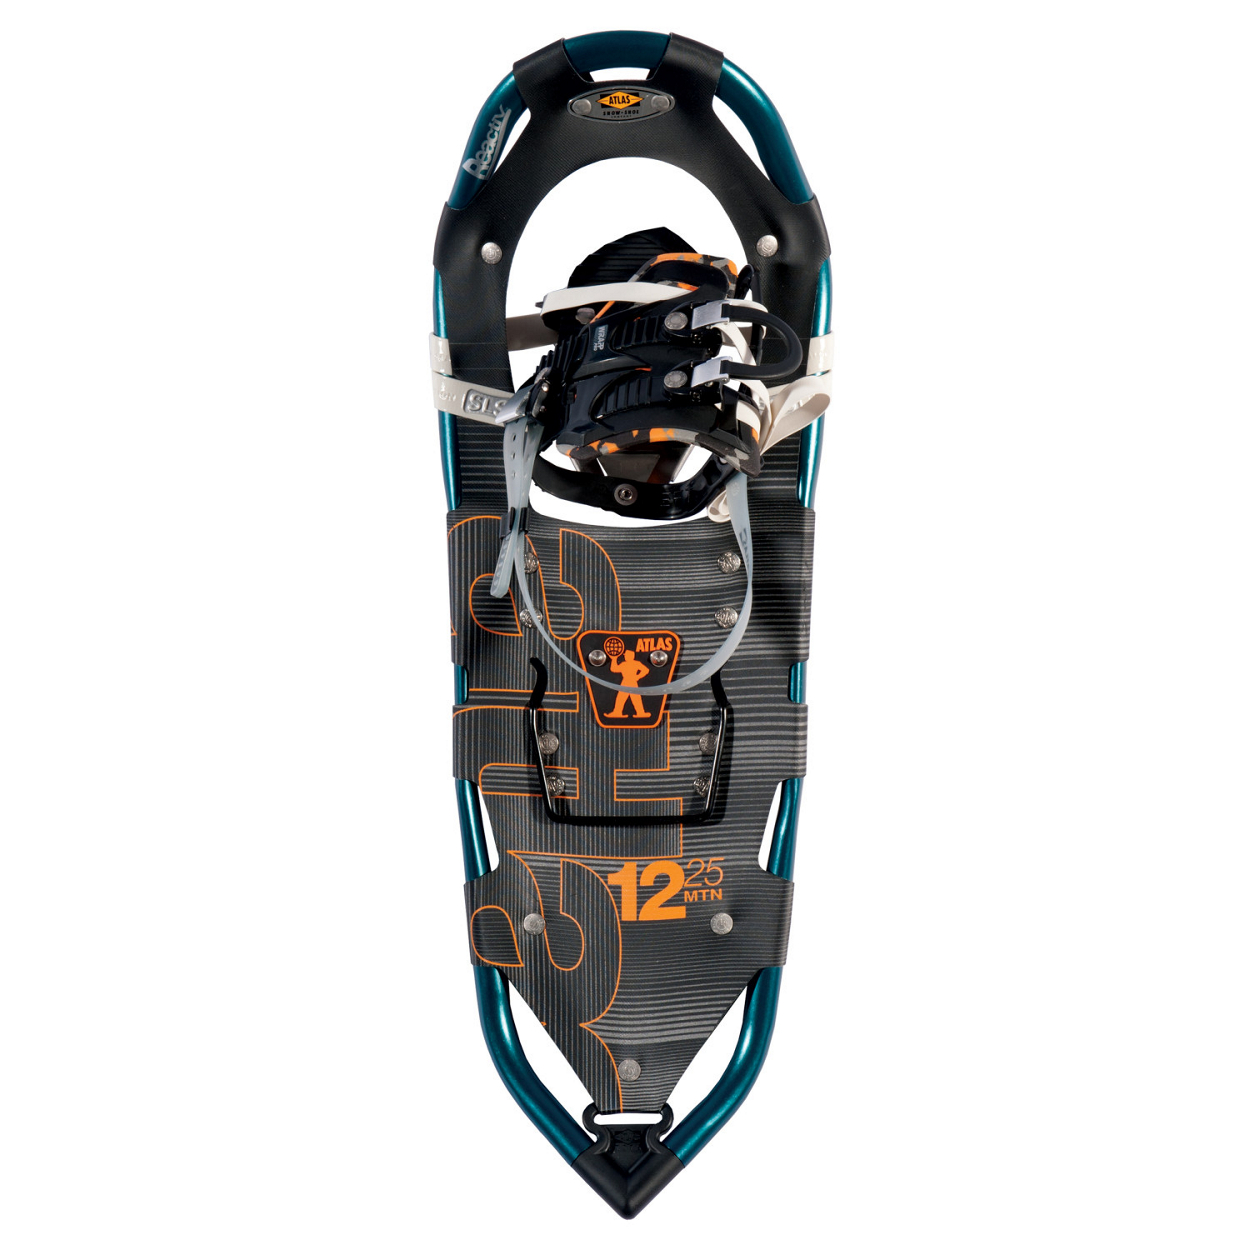 Image of 12 Series Snowshoe